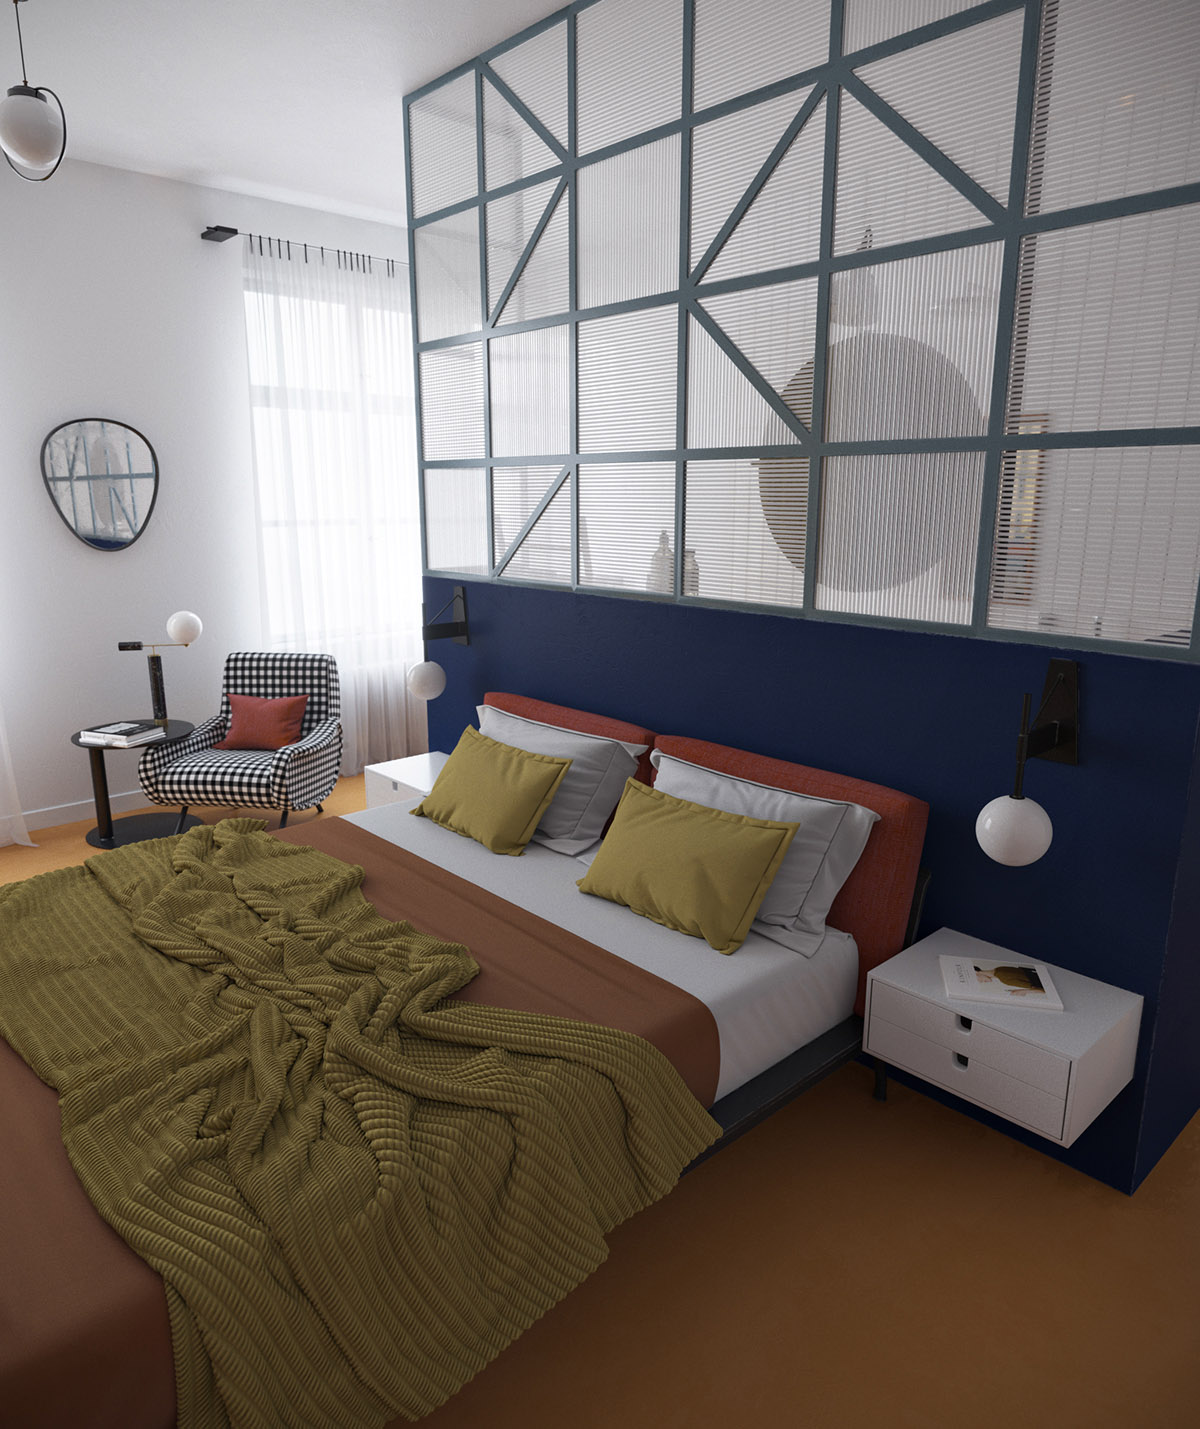 Piet Mondrian Inspired Interior Design To Give Your Home The De Stijl Flair images 4